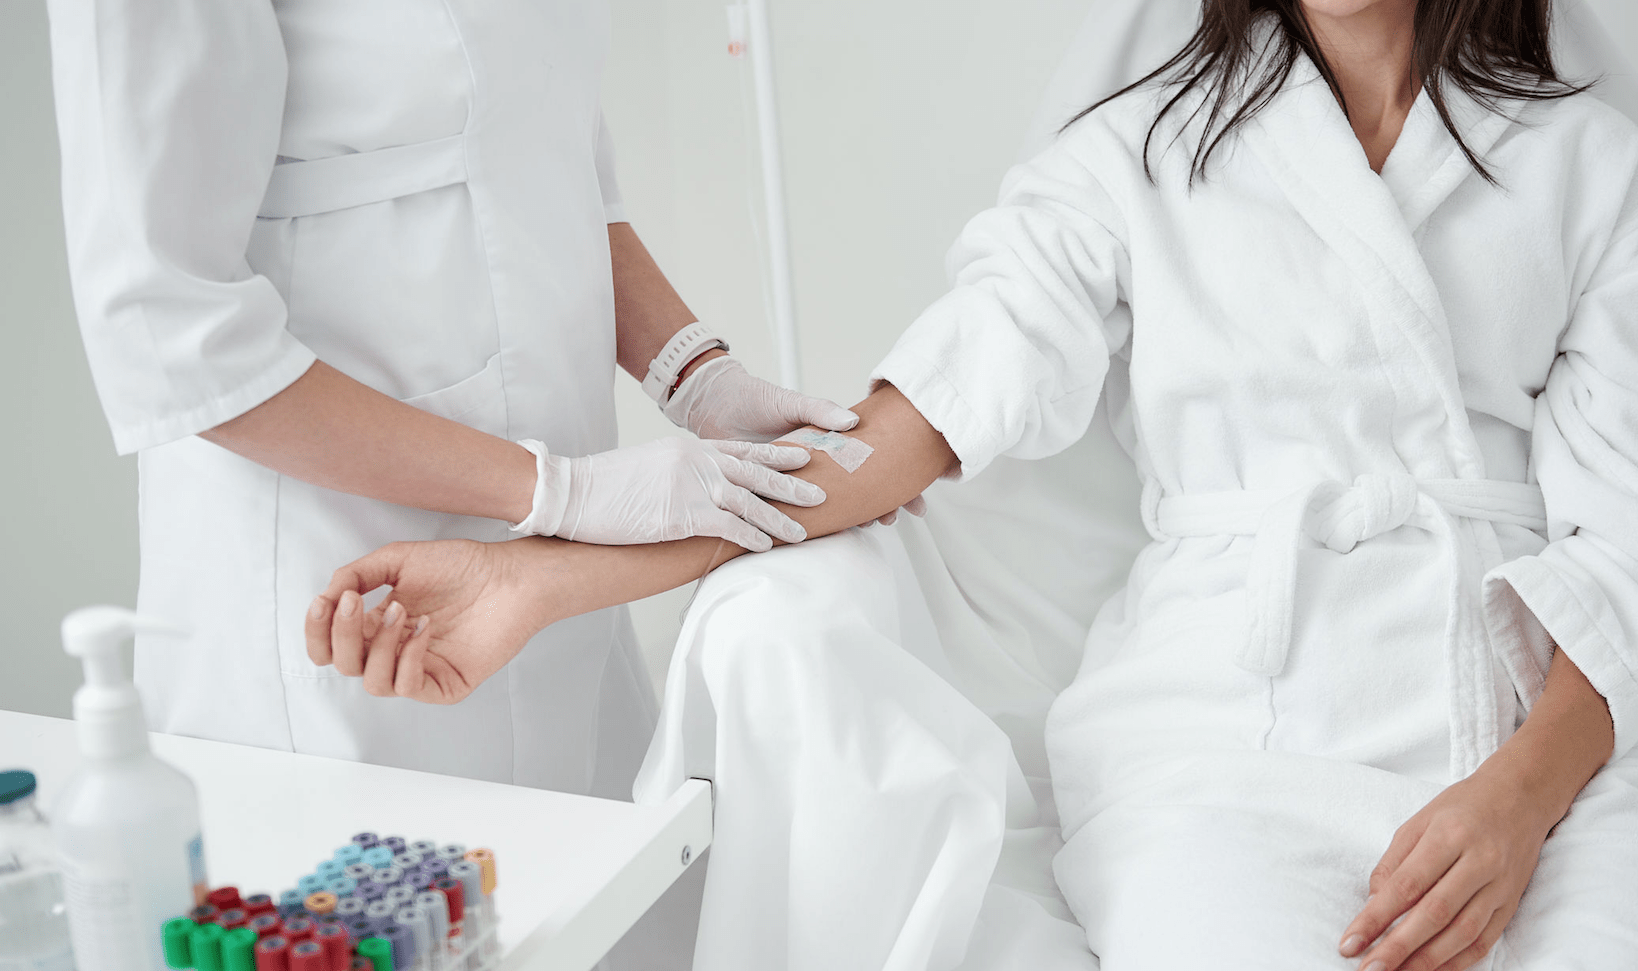 woman receiving IV therapy in sterile environment from licensed professional